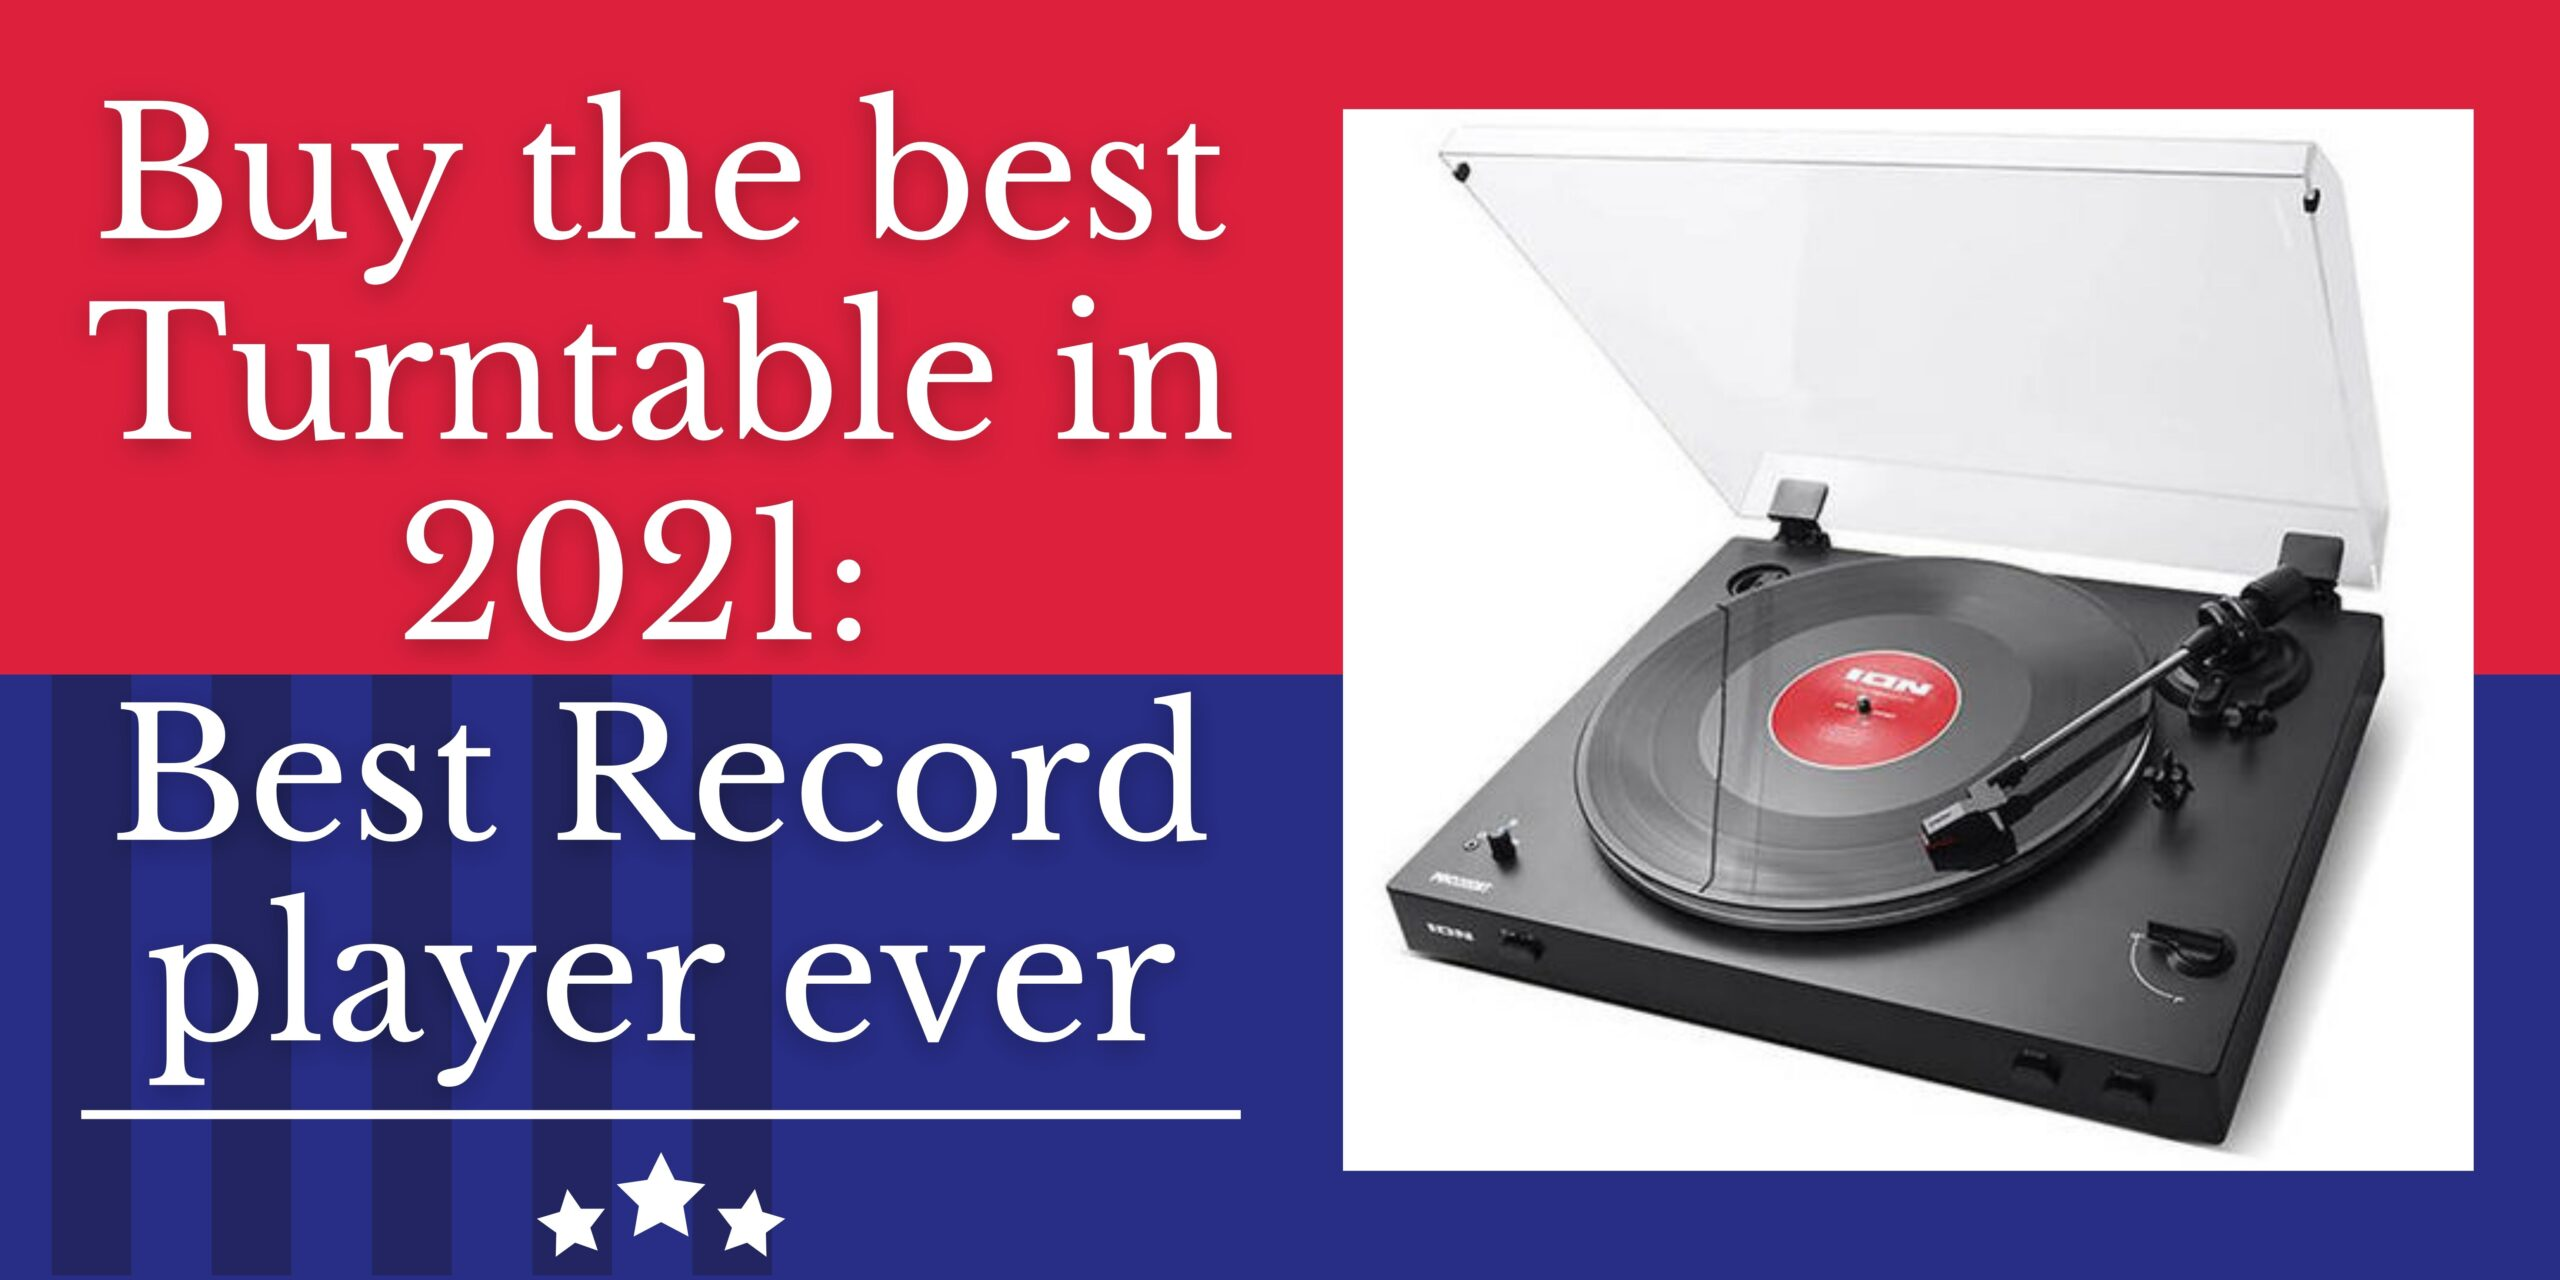 Buy the best Turntable in 2021: Best Record player ever